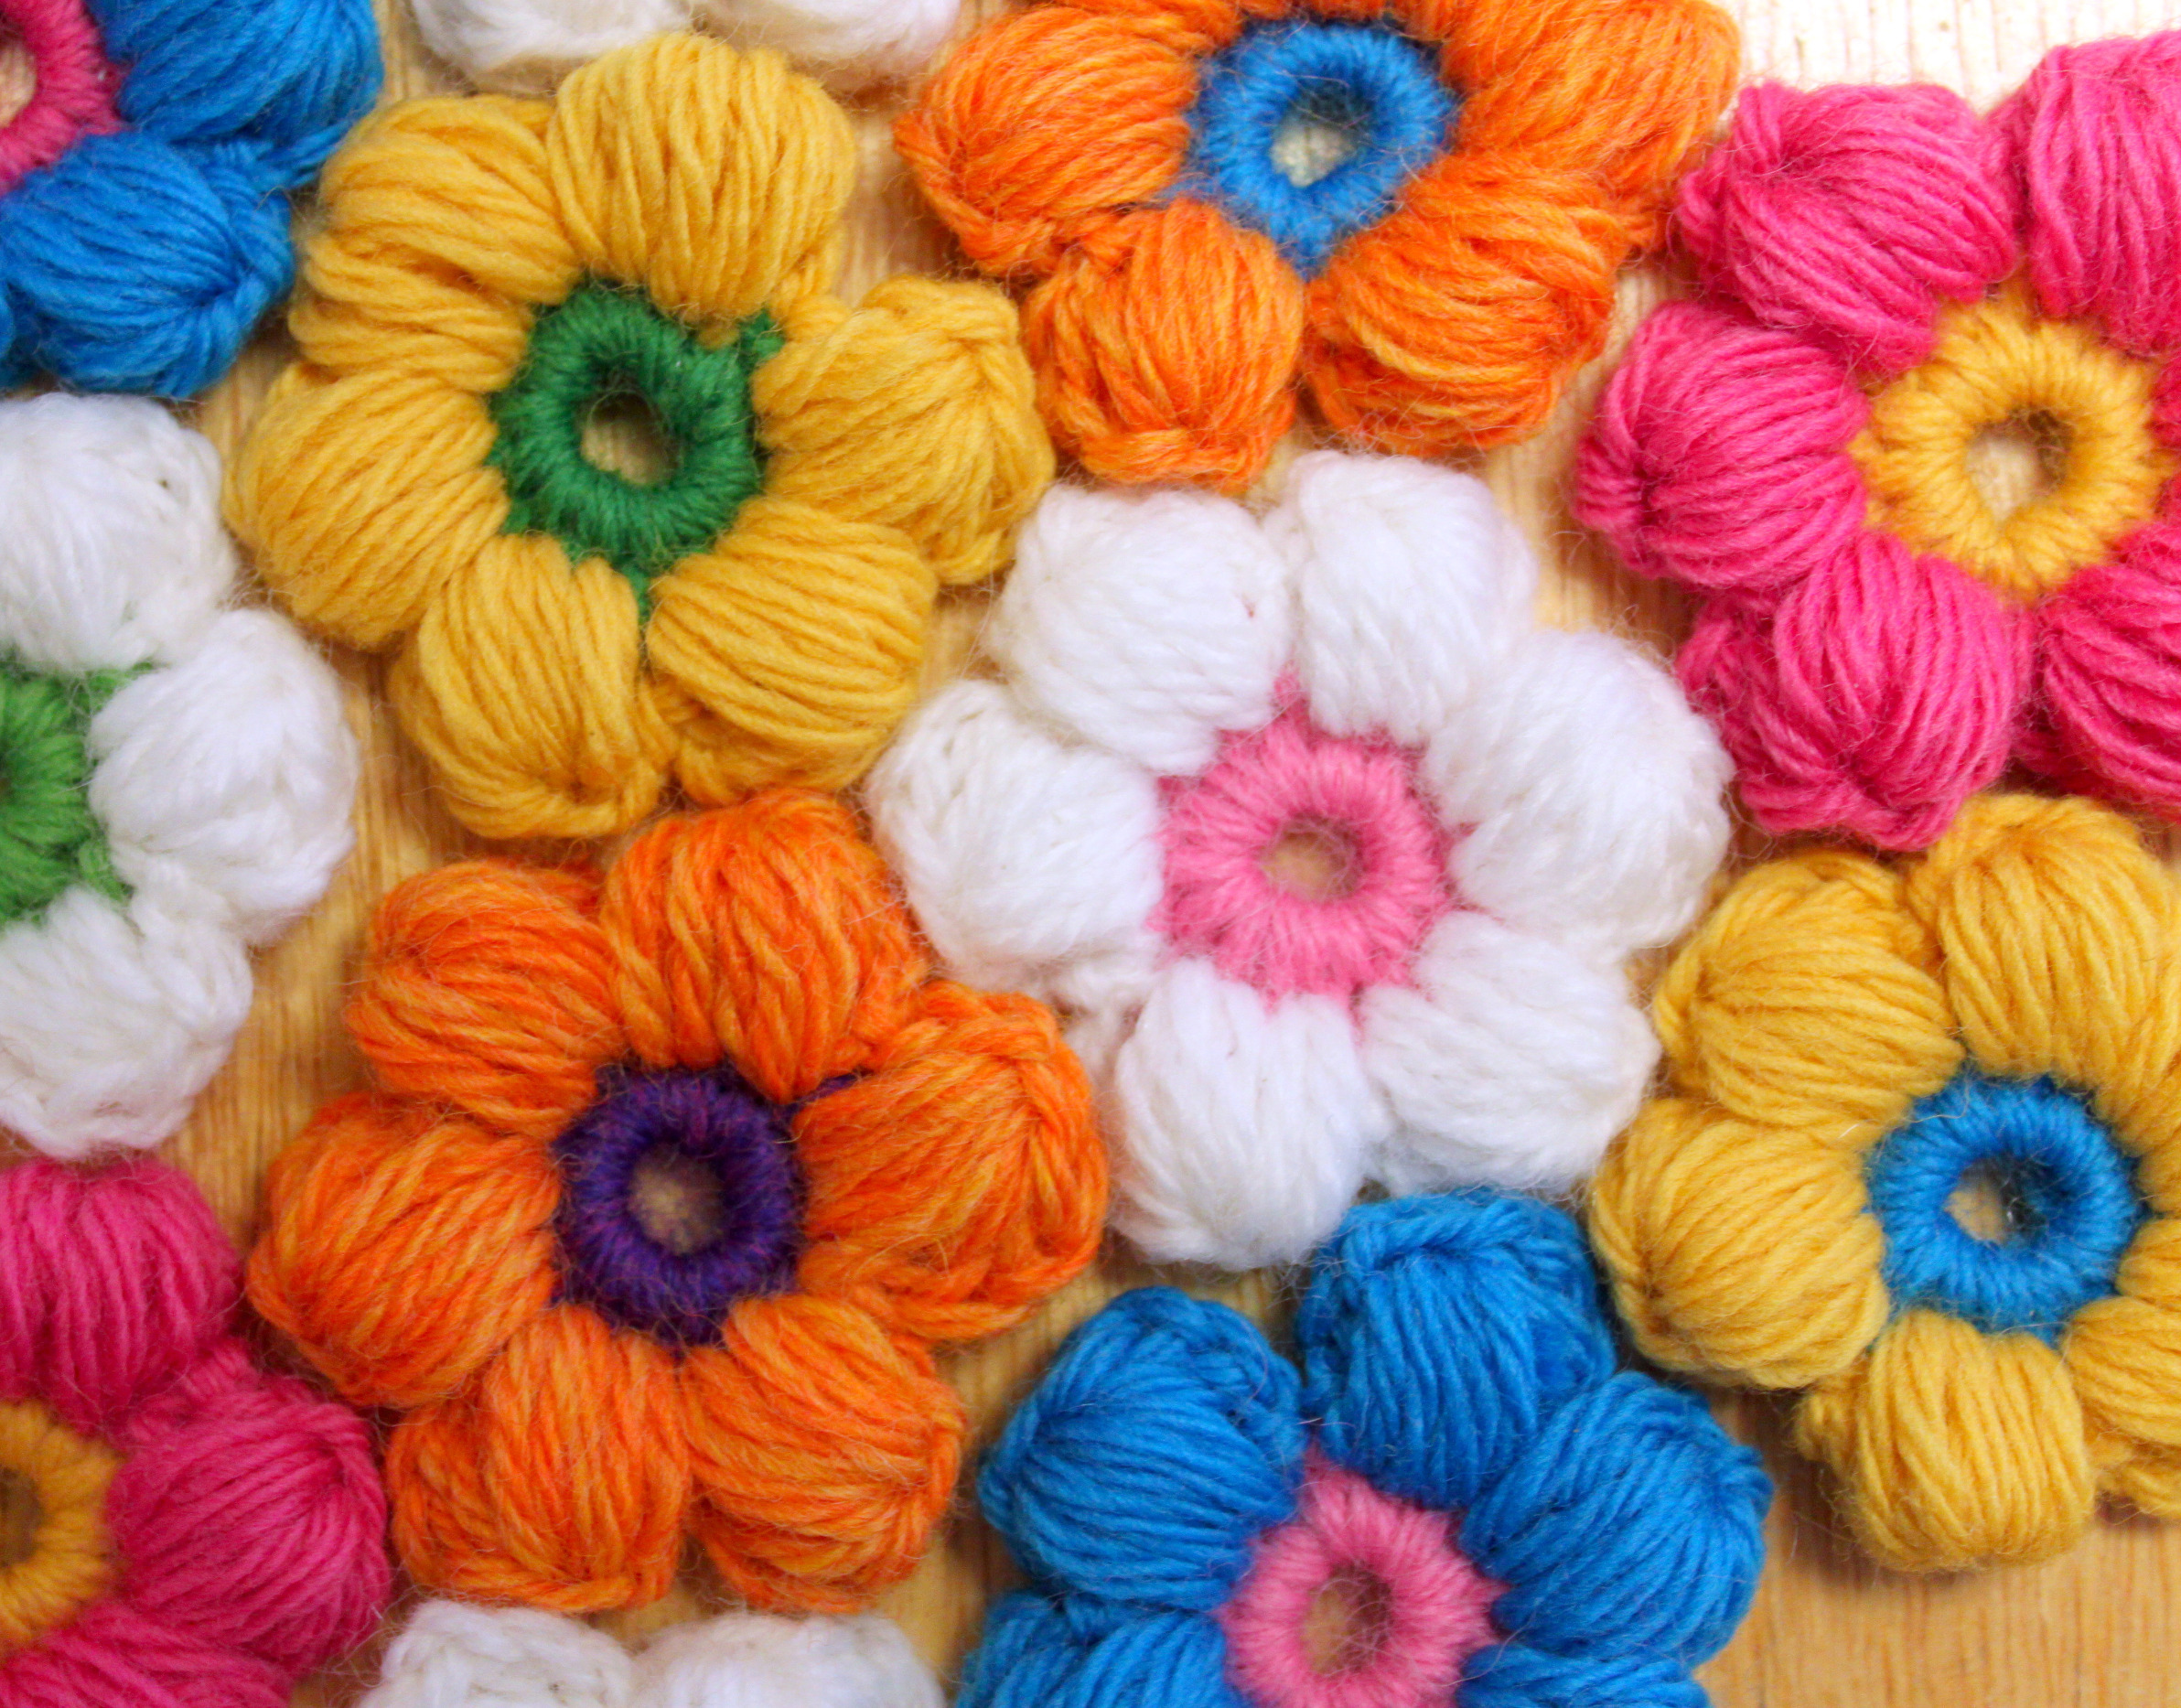 Diy crochet 6 petal puff stitch flower blanket - Diy Crochet 6 Petal Puff Stitch Flower Blanket 0